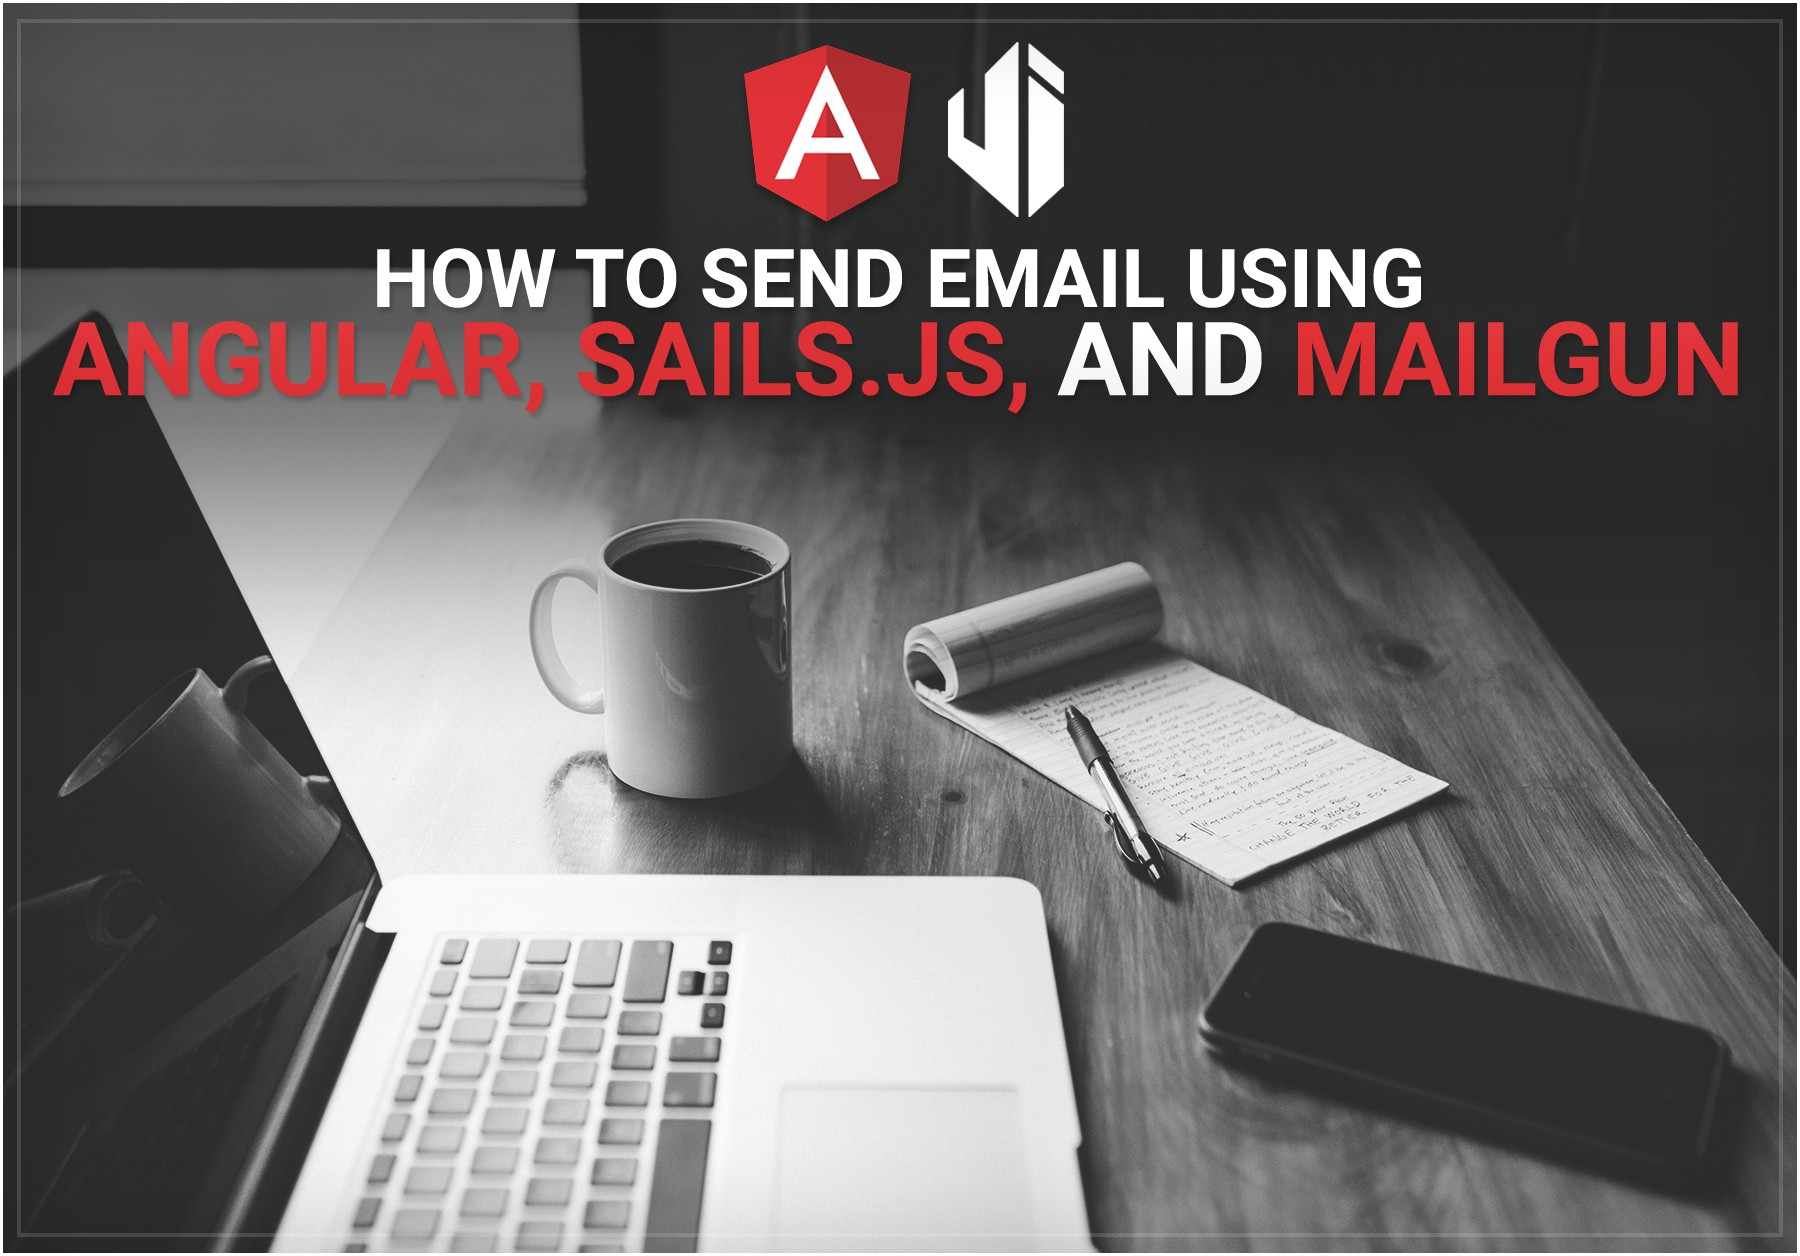 How to send an Email using Angular, Sails.js, and Mailgun